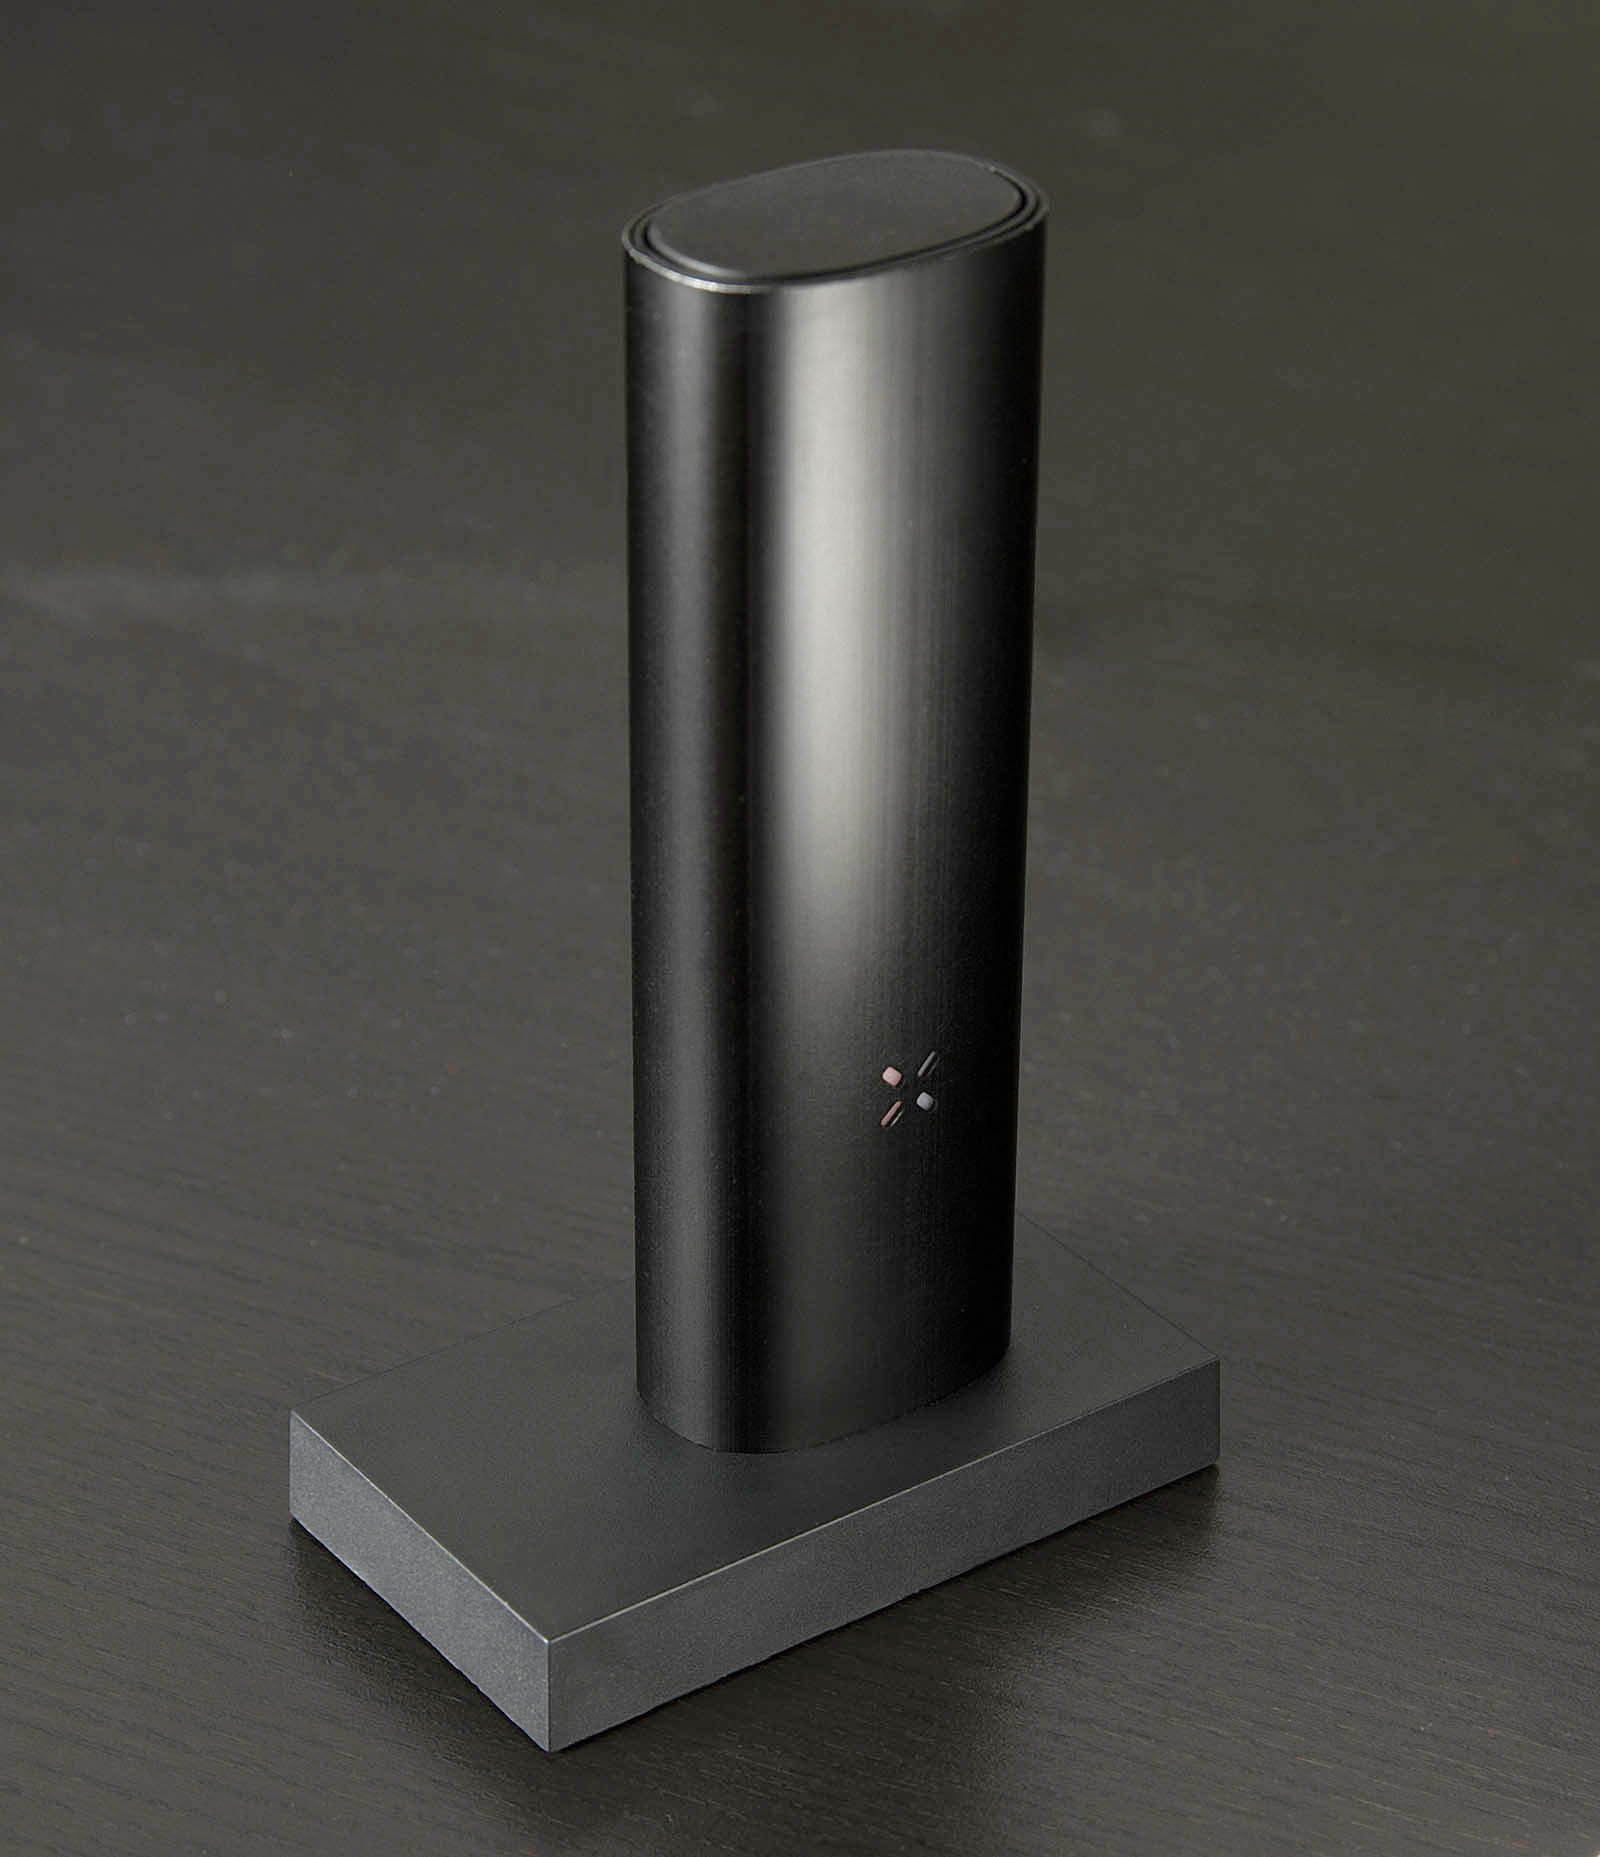 Pax by Ploom Portable Vaporizer Review, Weedist, Pax by Ploom Portable Vaporizer Review, Weedist, Pax by Ploom f_pax200092